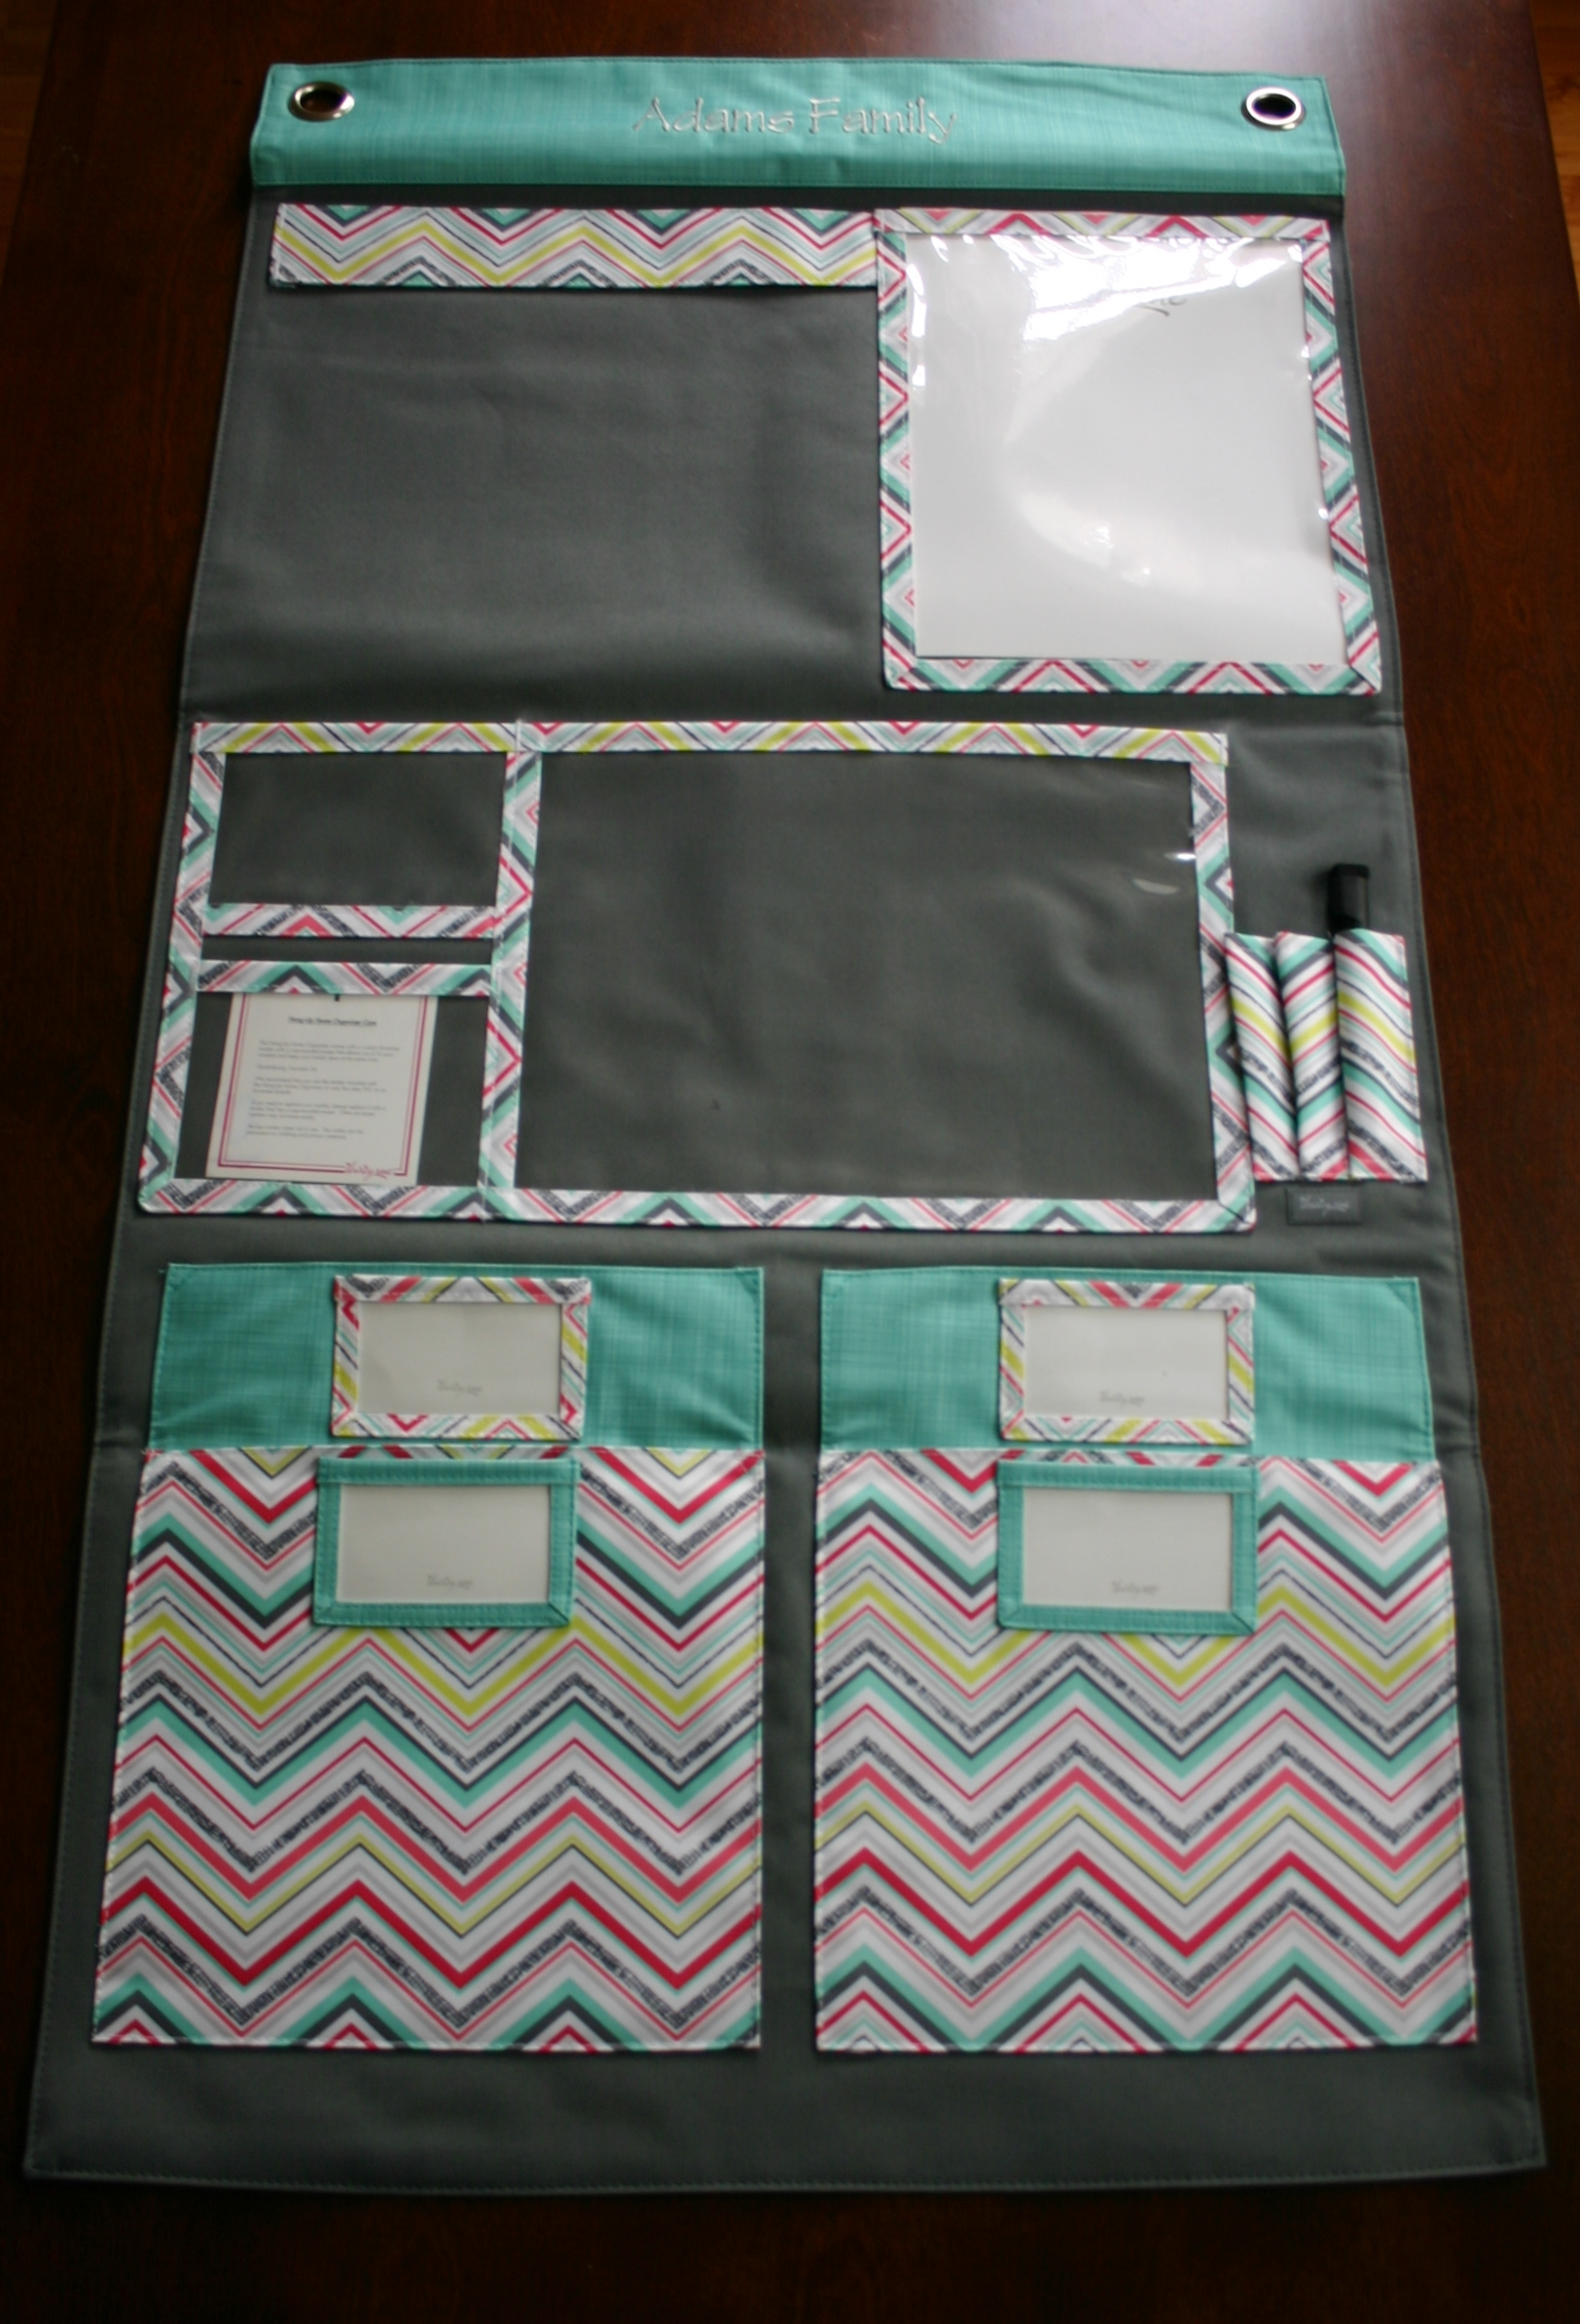 Wall Organizers For Home thirty-one gifts hang-up home organizer review & purse #giveaway